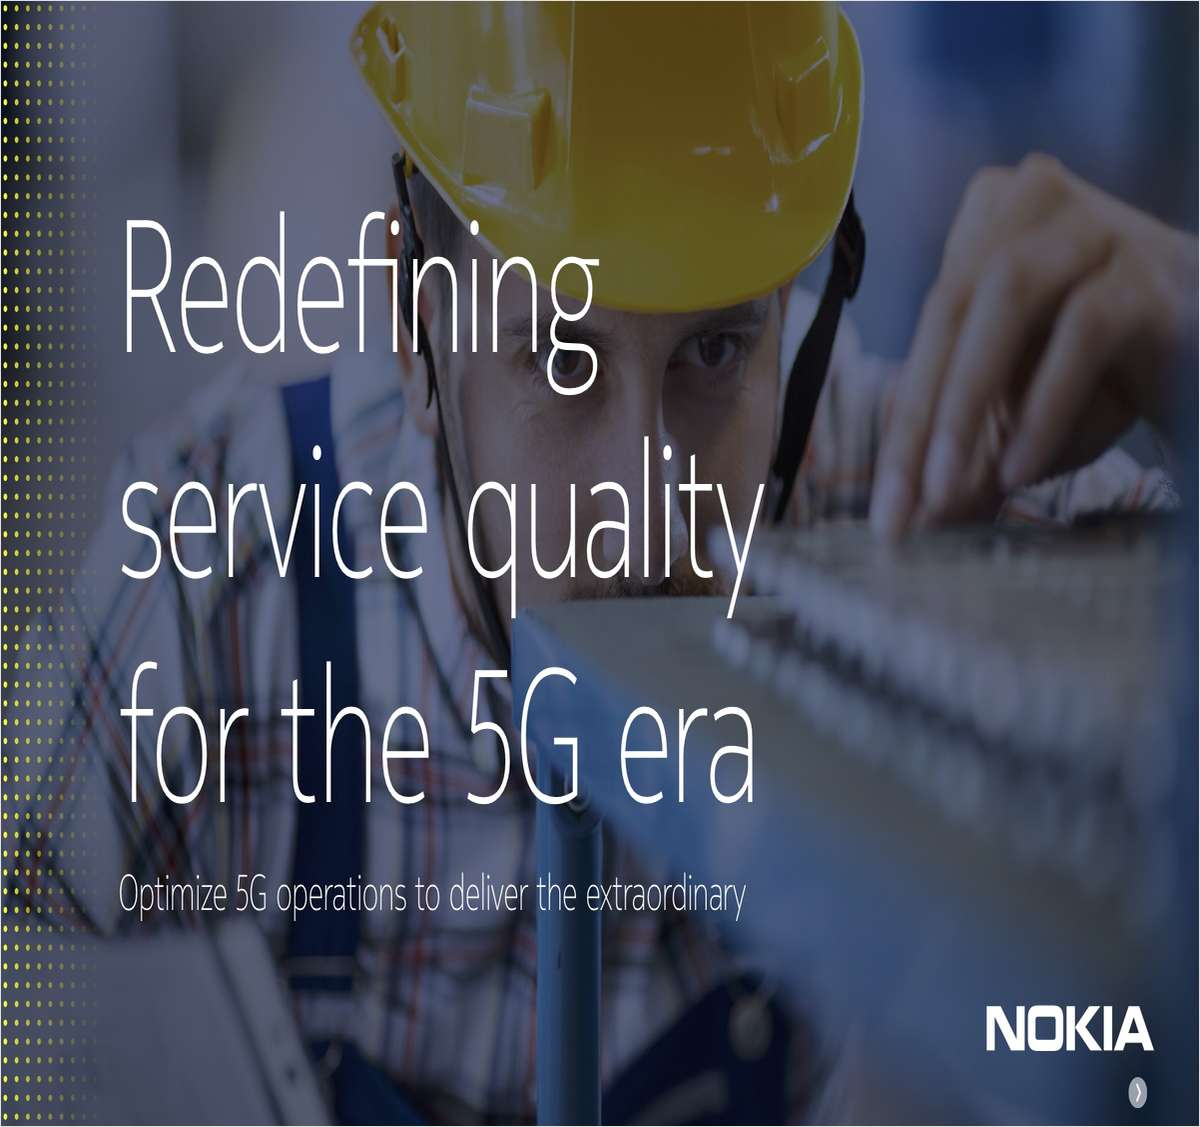 Redefining service quality for the 5G era